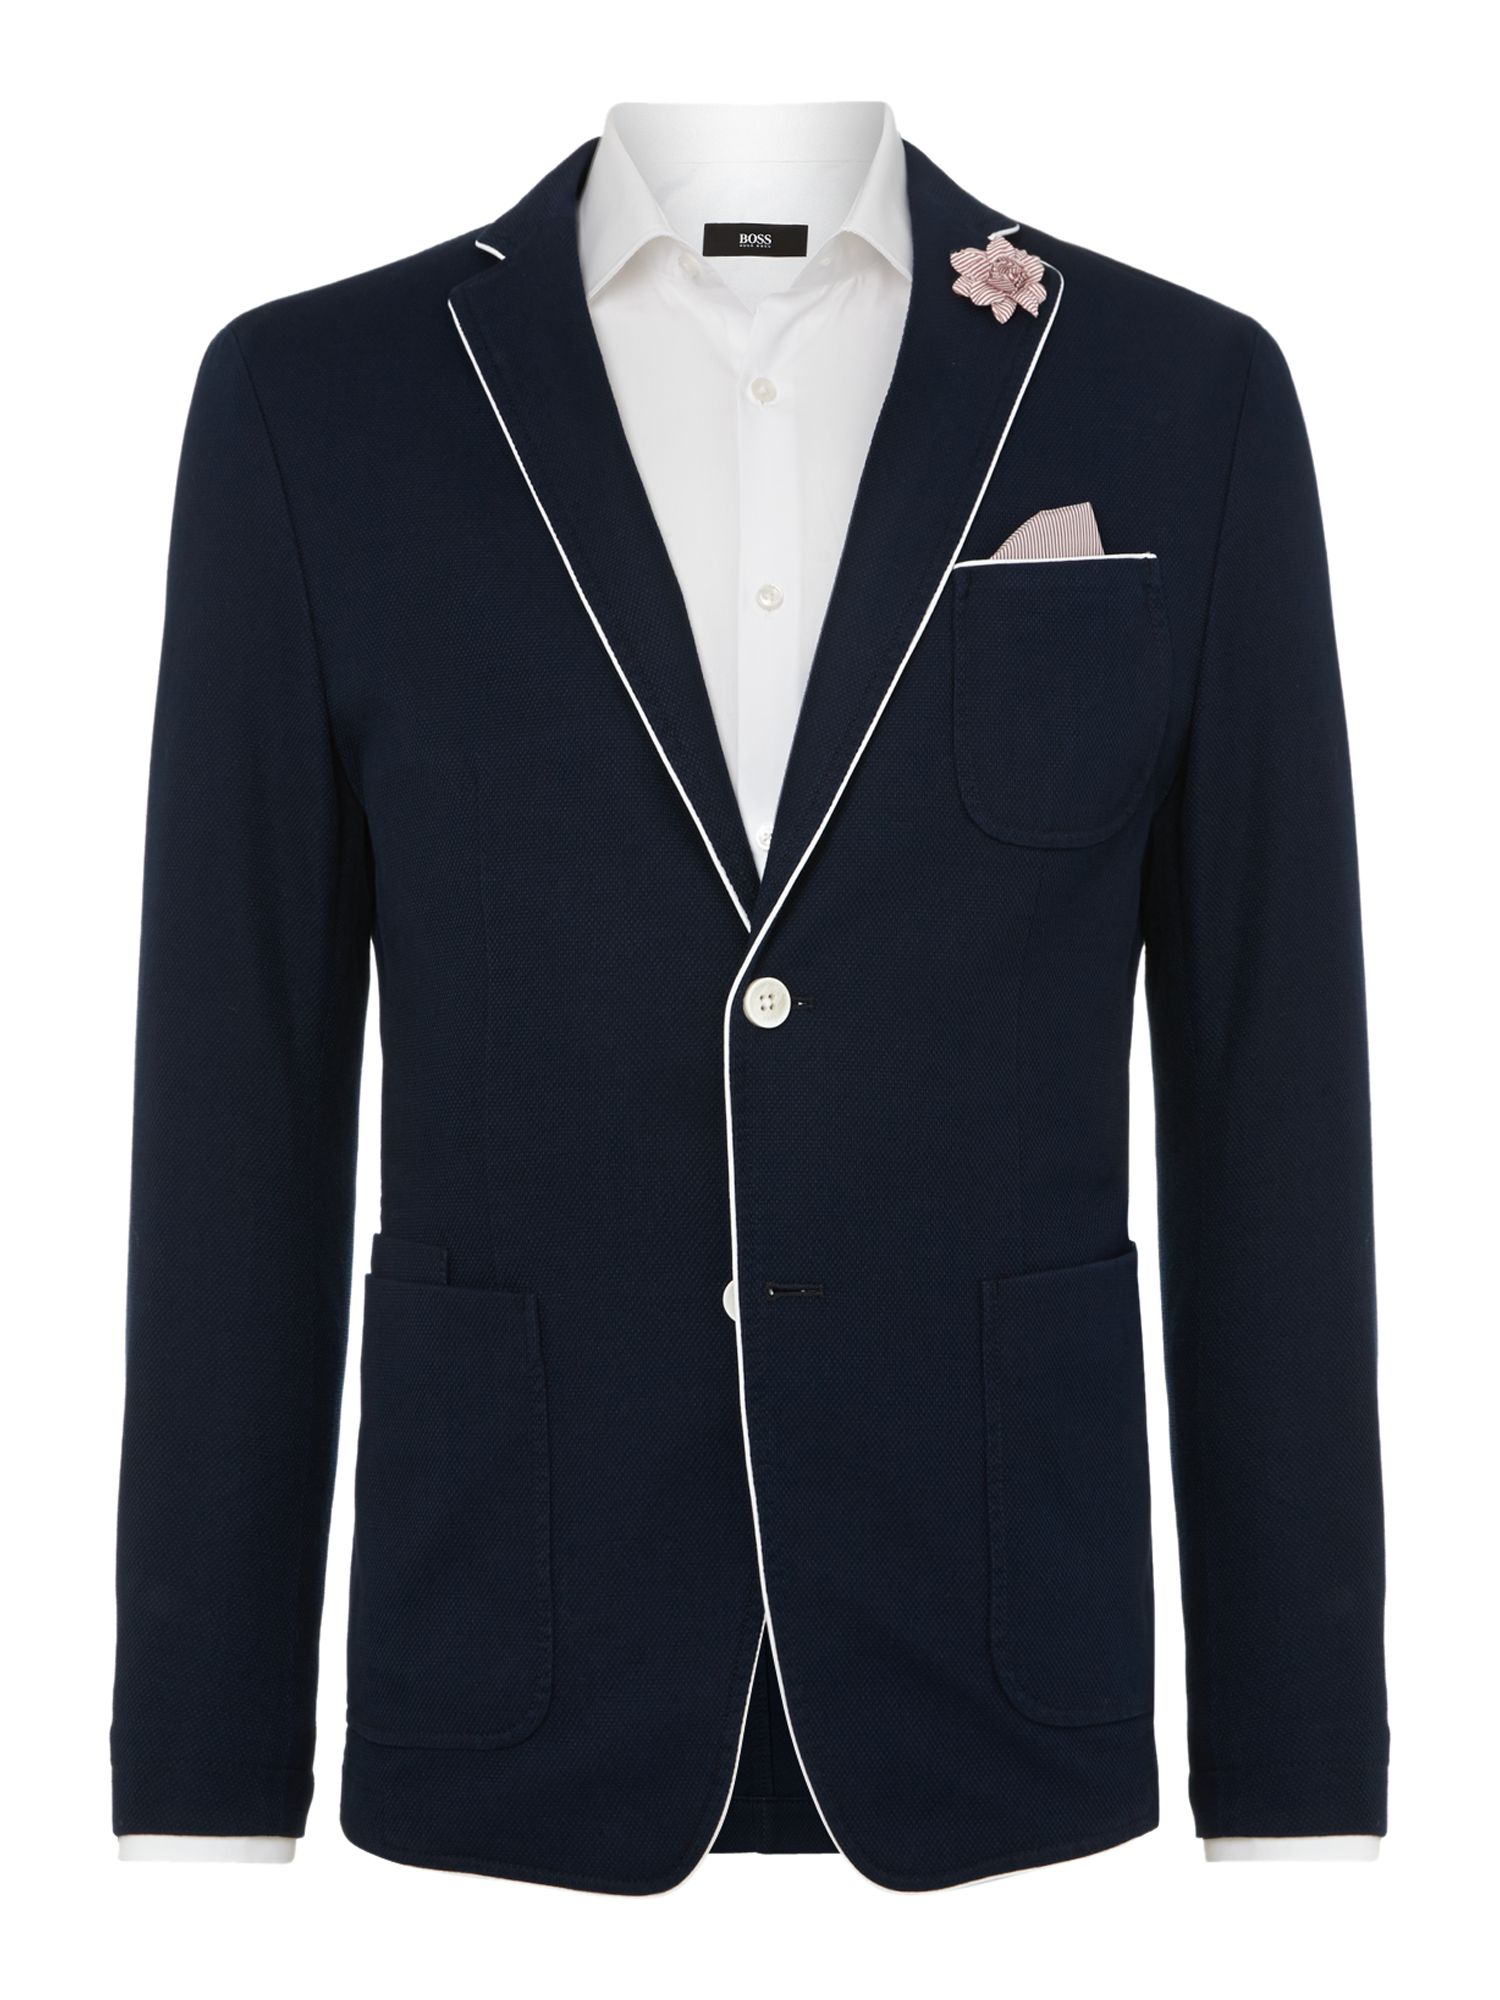 Three pocket pique blazer